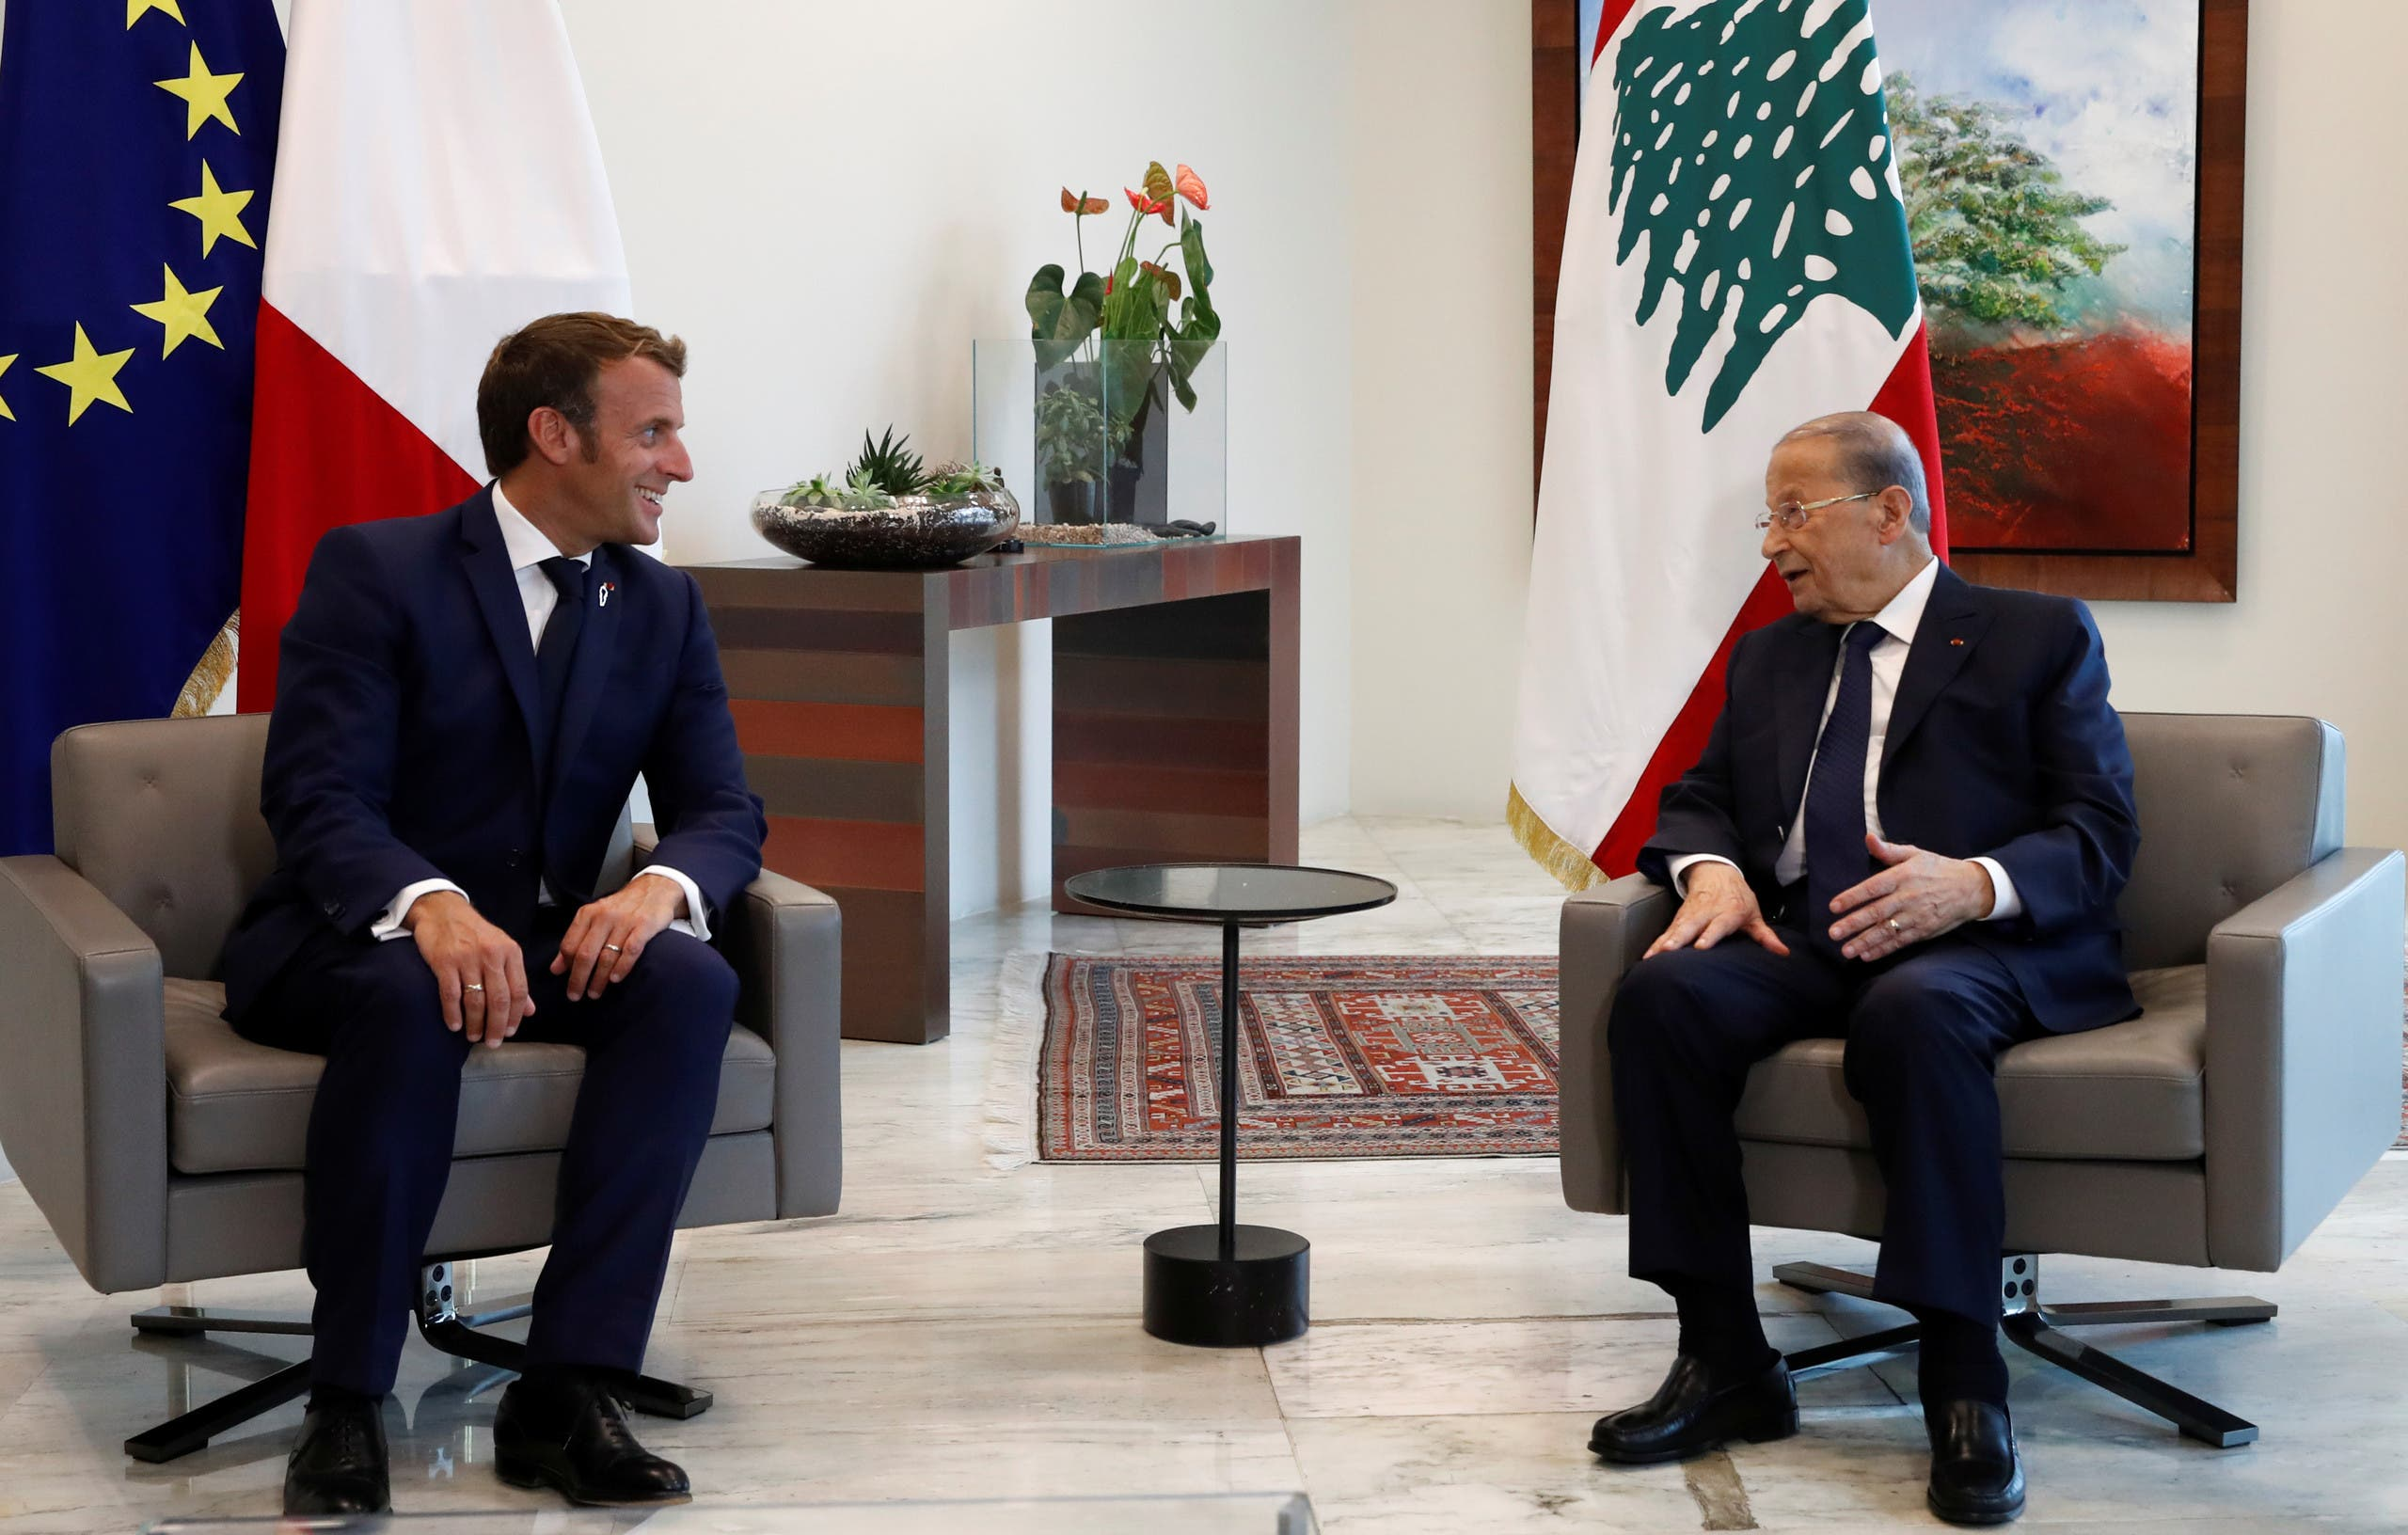 French President Emmanuel Macron and Lebanon's President Michel Aoun attend a meeting at the presidential palace in Baabda, Lebanon September 1, 2020. (File photo: Reuters)